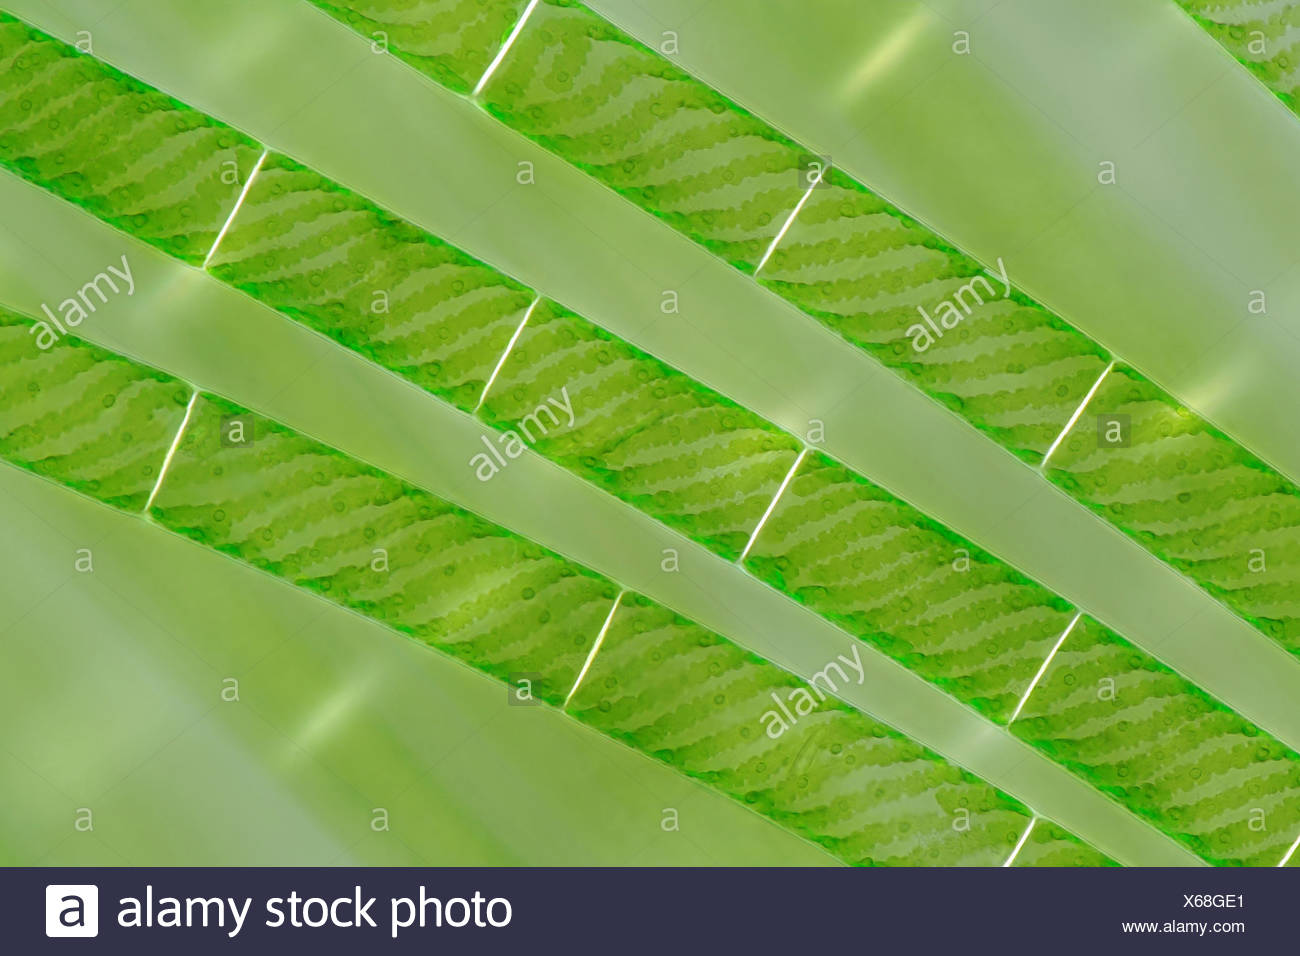 Spiraling Chloroplasts In Spirogyra Stock Photo  279242377